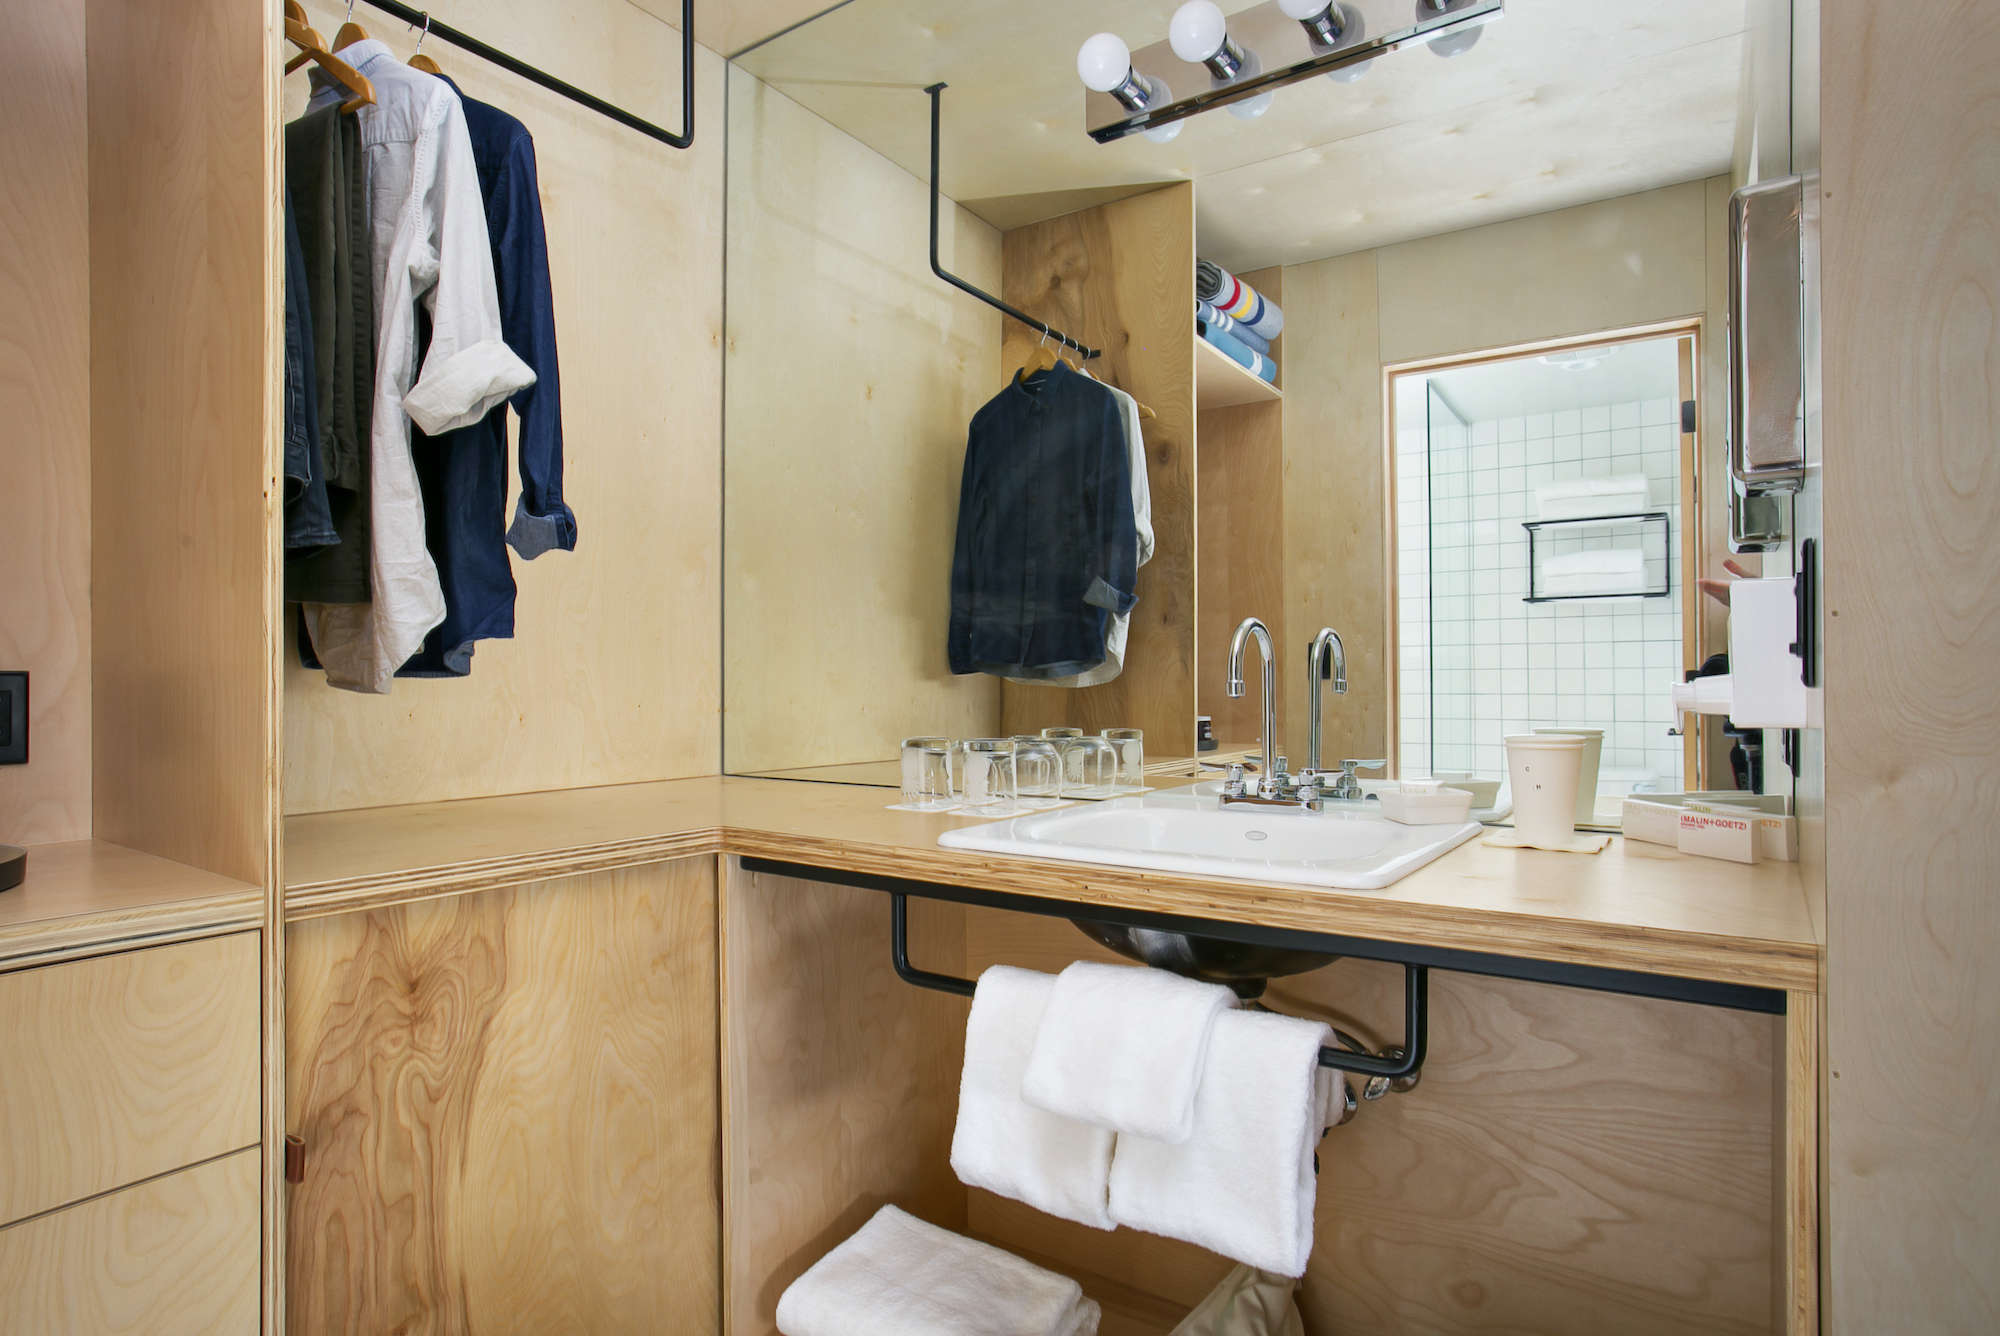 Coachman-hotel-tahoe-plywood-vanity-bathroom